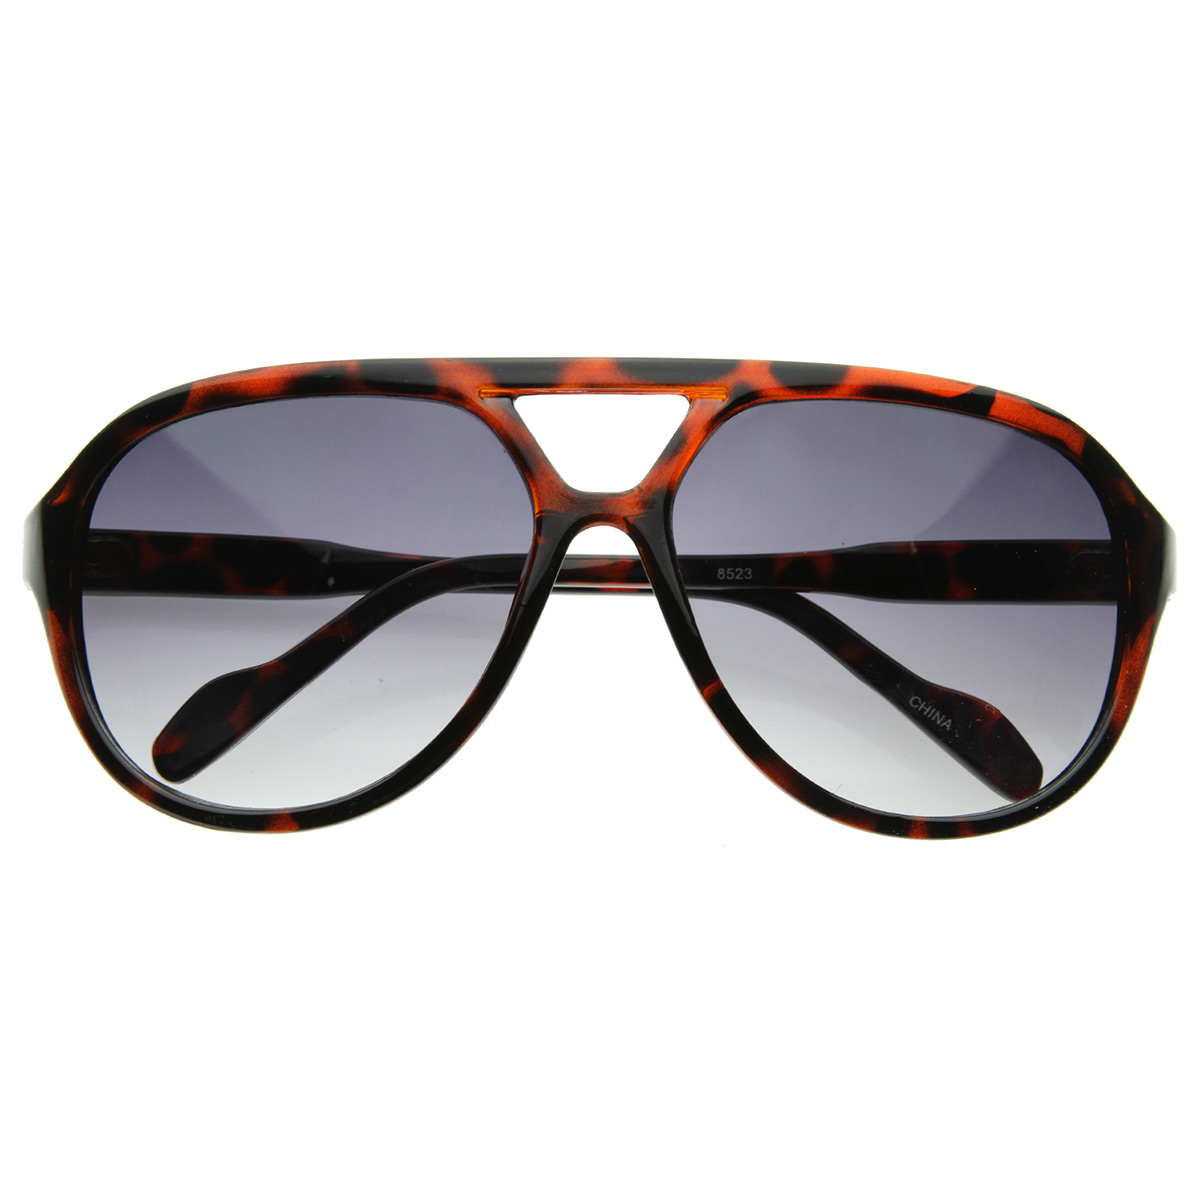 Retro-Fashion-Thick-Bold-Tear-Drop-Aviator-Sunglasses